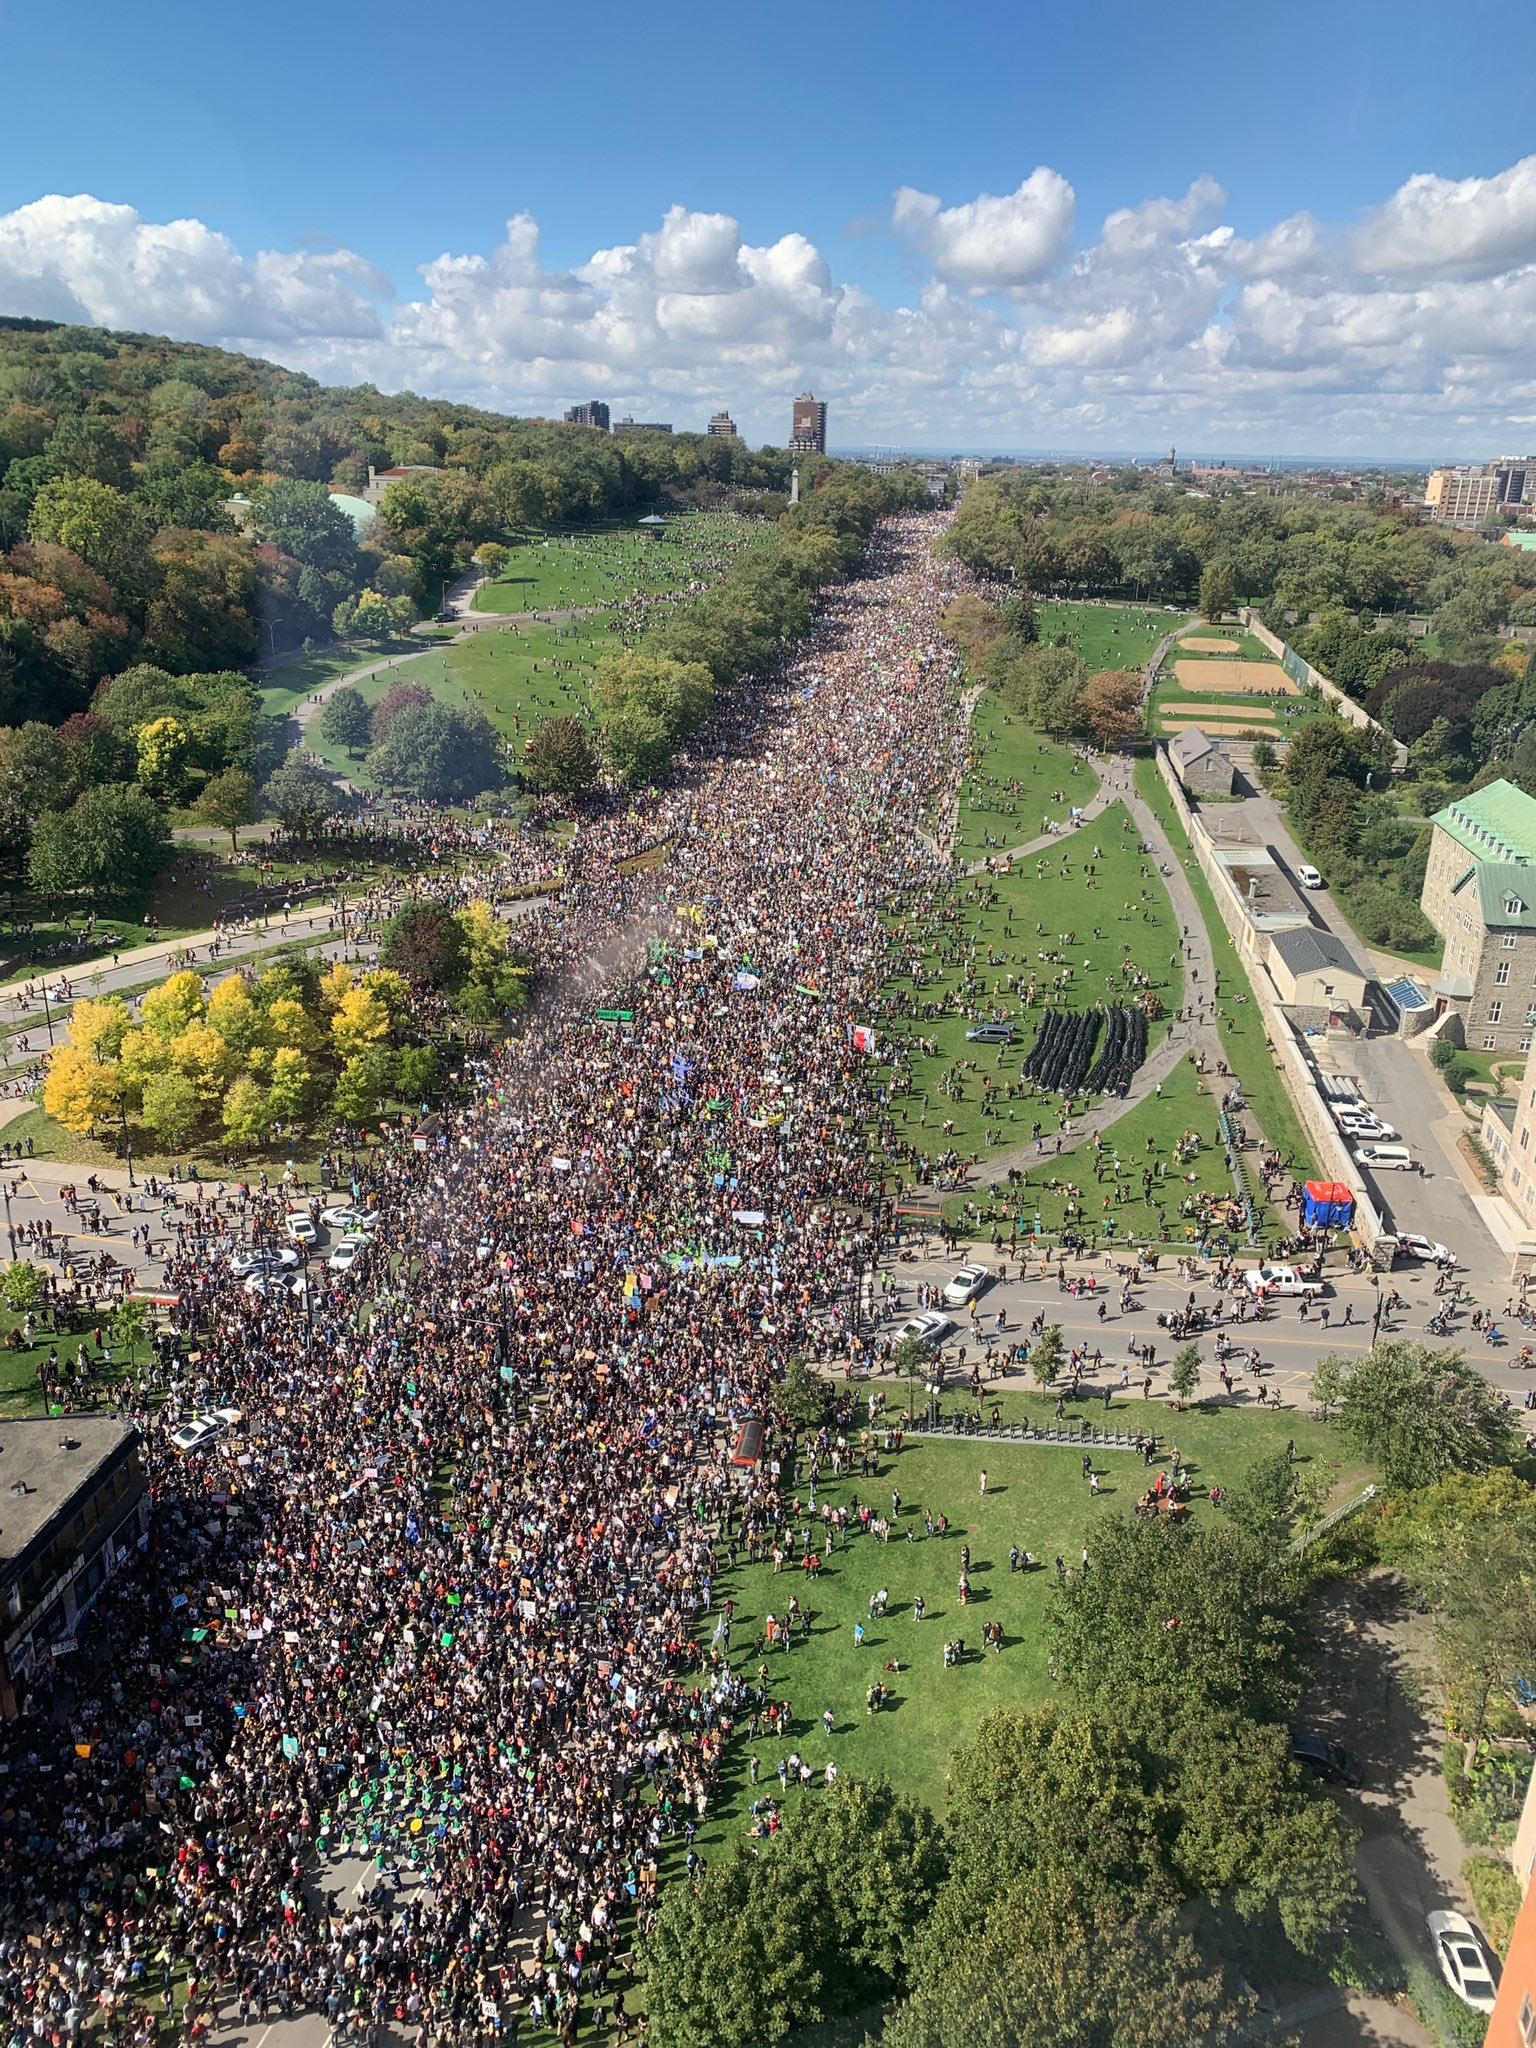 Millions Marched for Climate. Here's What's Next.